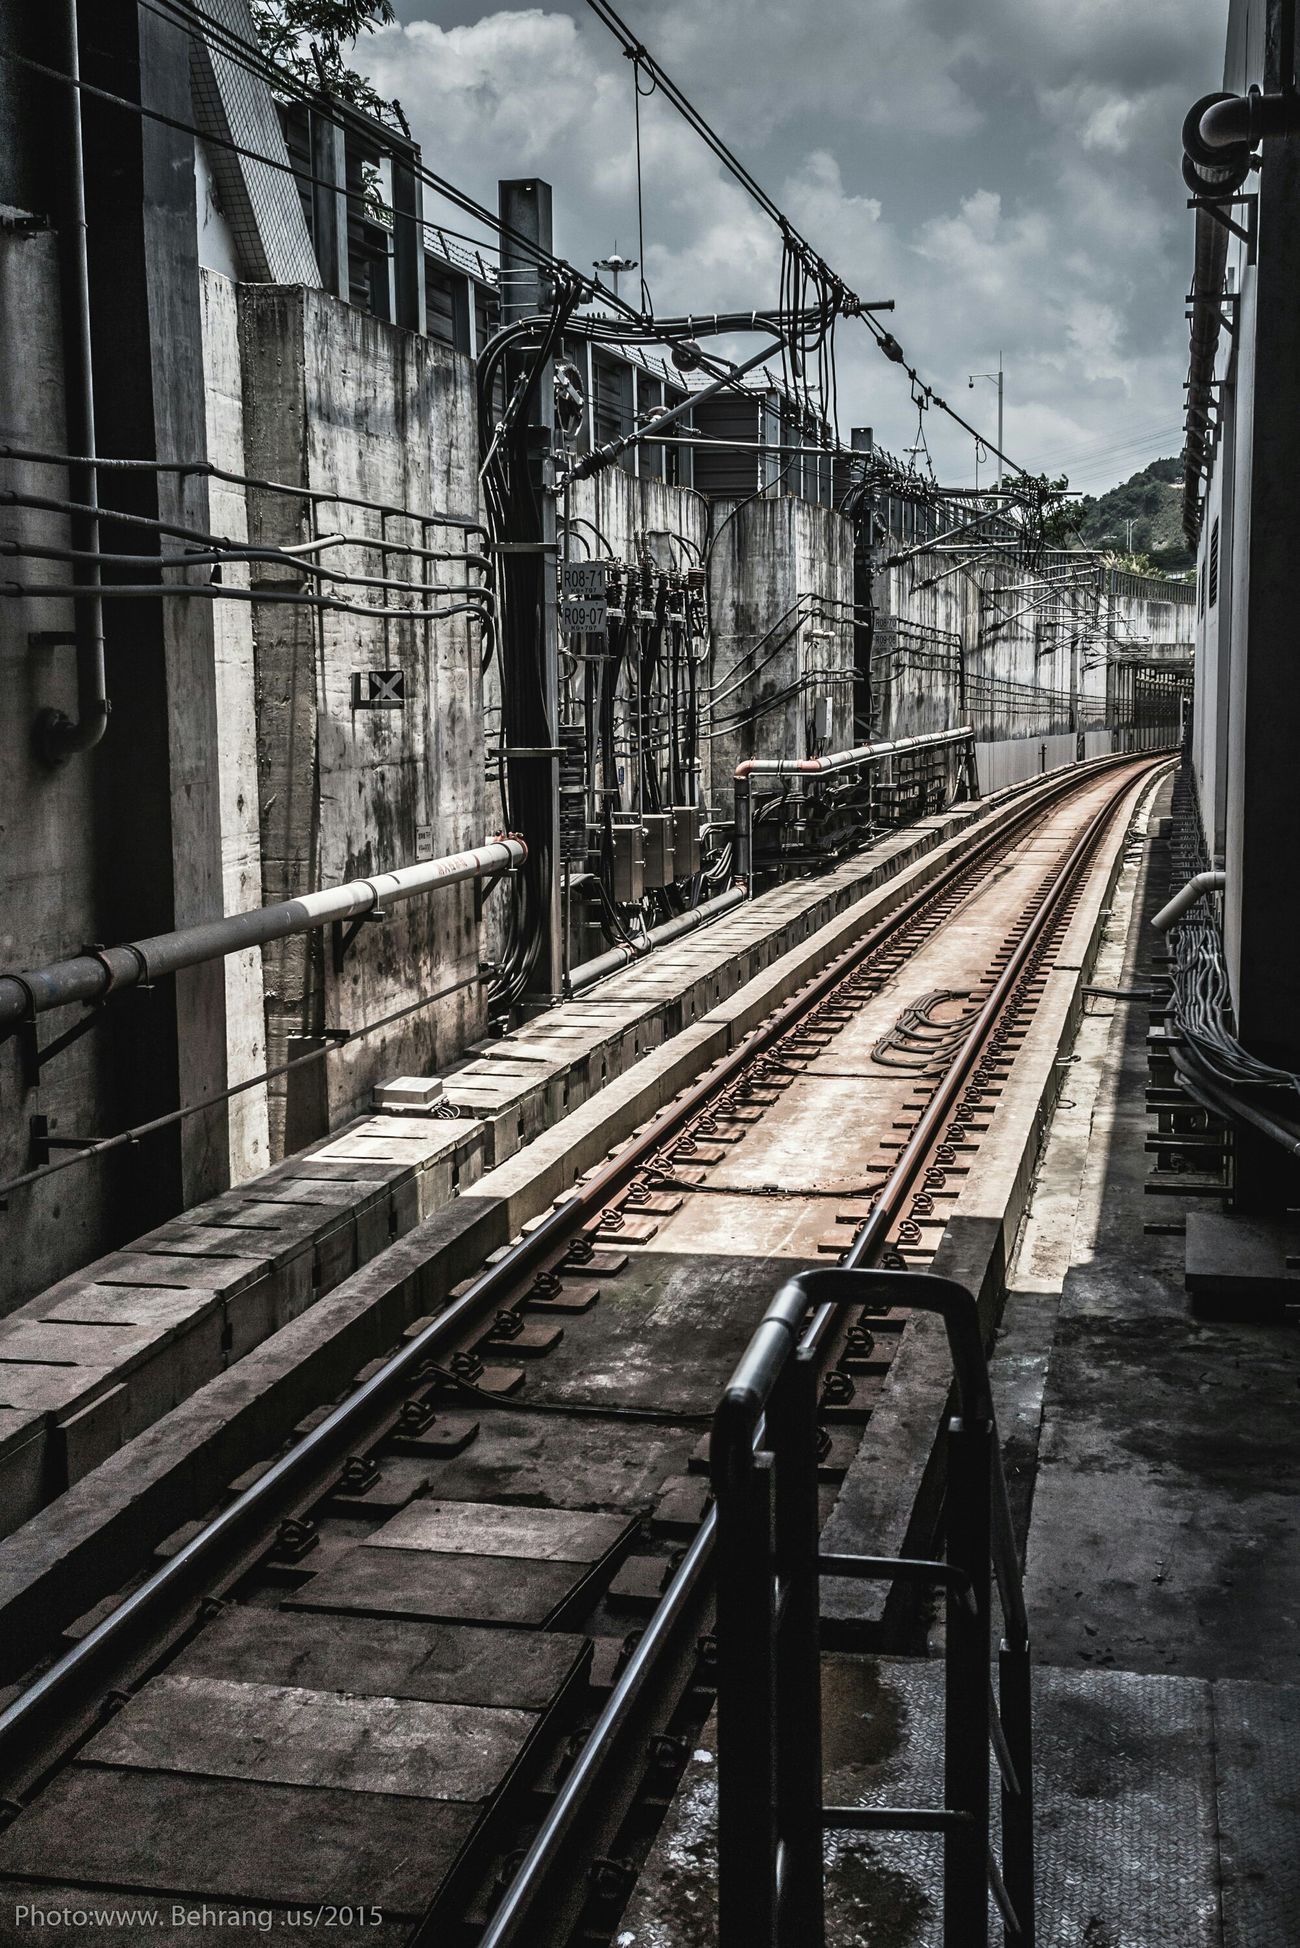 Natural Light Streetphotography Shenzhen China Subway Behrang.us Perspective Industrial Landscapes